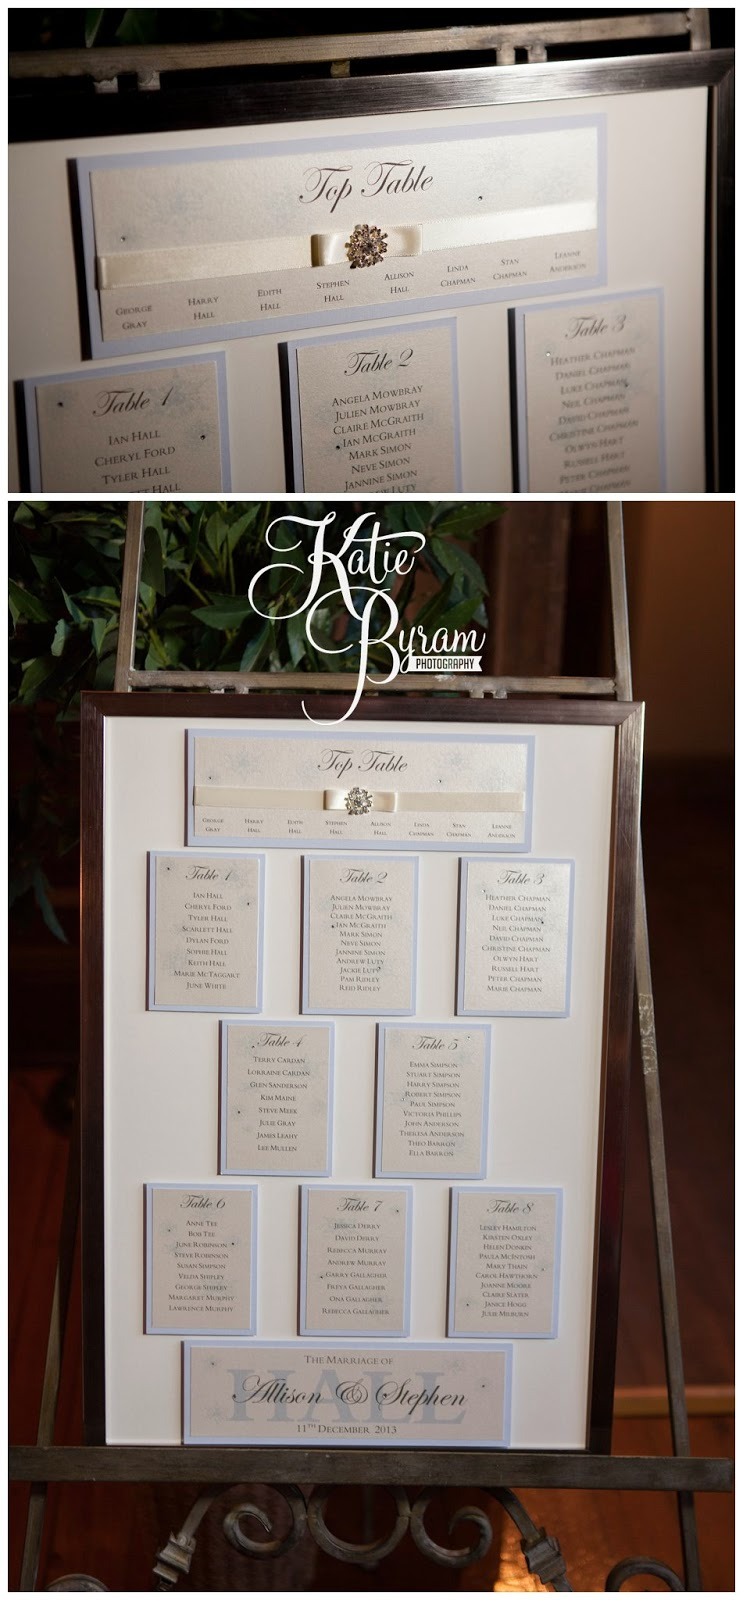 wedding table plan,ellingham hall wedding, alnwick wedding, katie byram photography, ellingham hall, mia sposa bridal, wedding venues north east, newcastle wedding photographer, ellingham, alnwick treehouse wedding, adam prest flowers, winter wedding, winter wedding theme, by wendy stationery, quirky wedding photography, northumberland wedding, northumberland, dani.mua, dani make up artist, lisa cameron hair